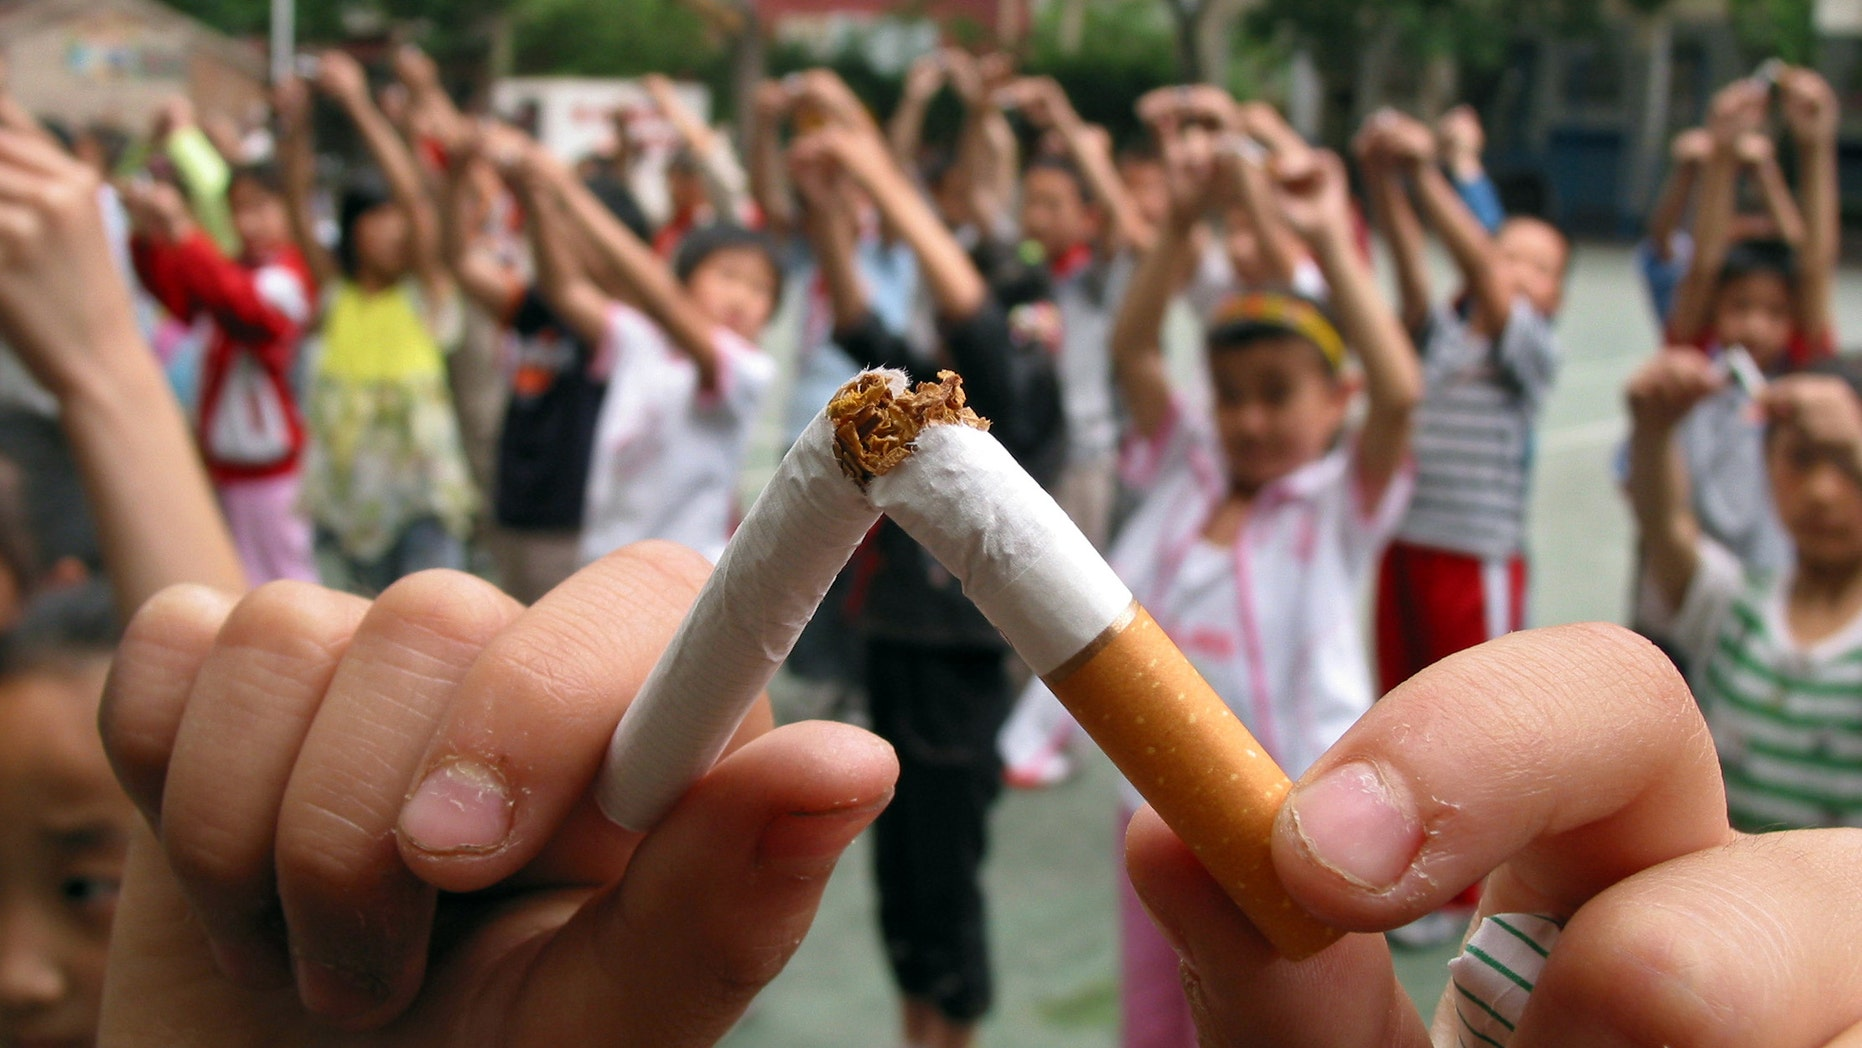 Pupils break cigarettes as a gesture showing their determinations of non-smoking at an elementary school of Jinan, the capital eastern China's Shandong province. (REUTERS/Stringer)